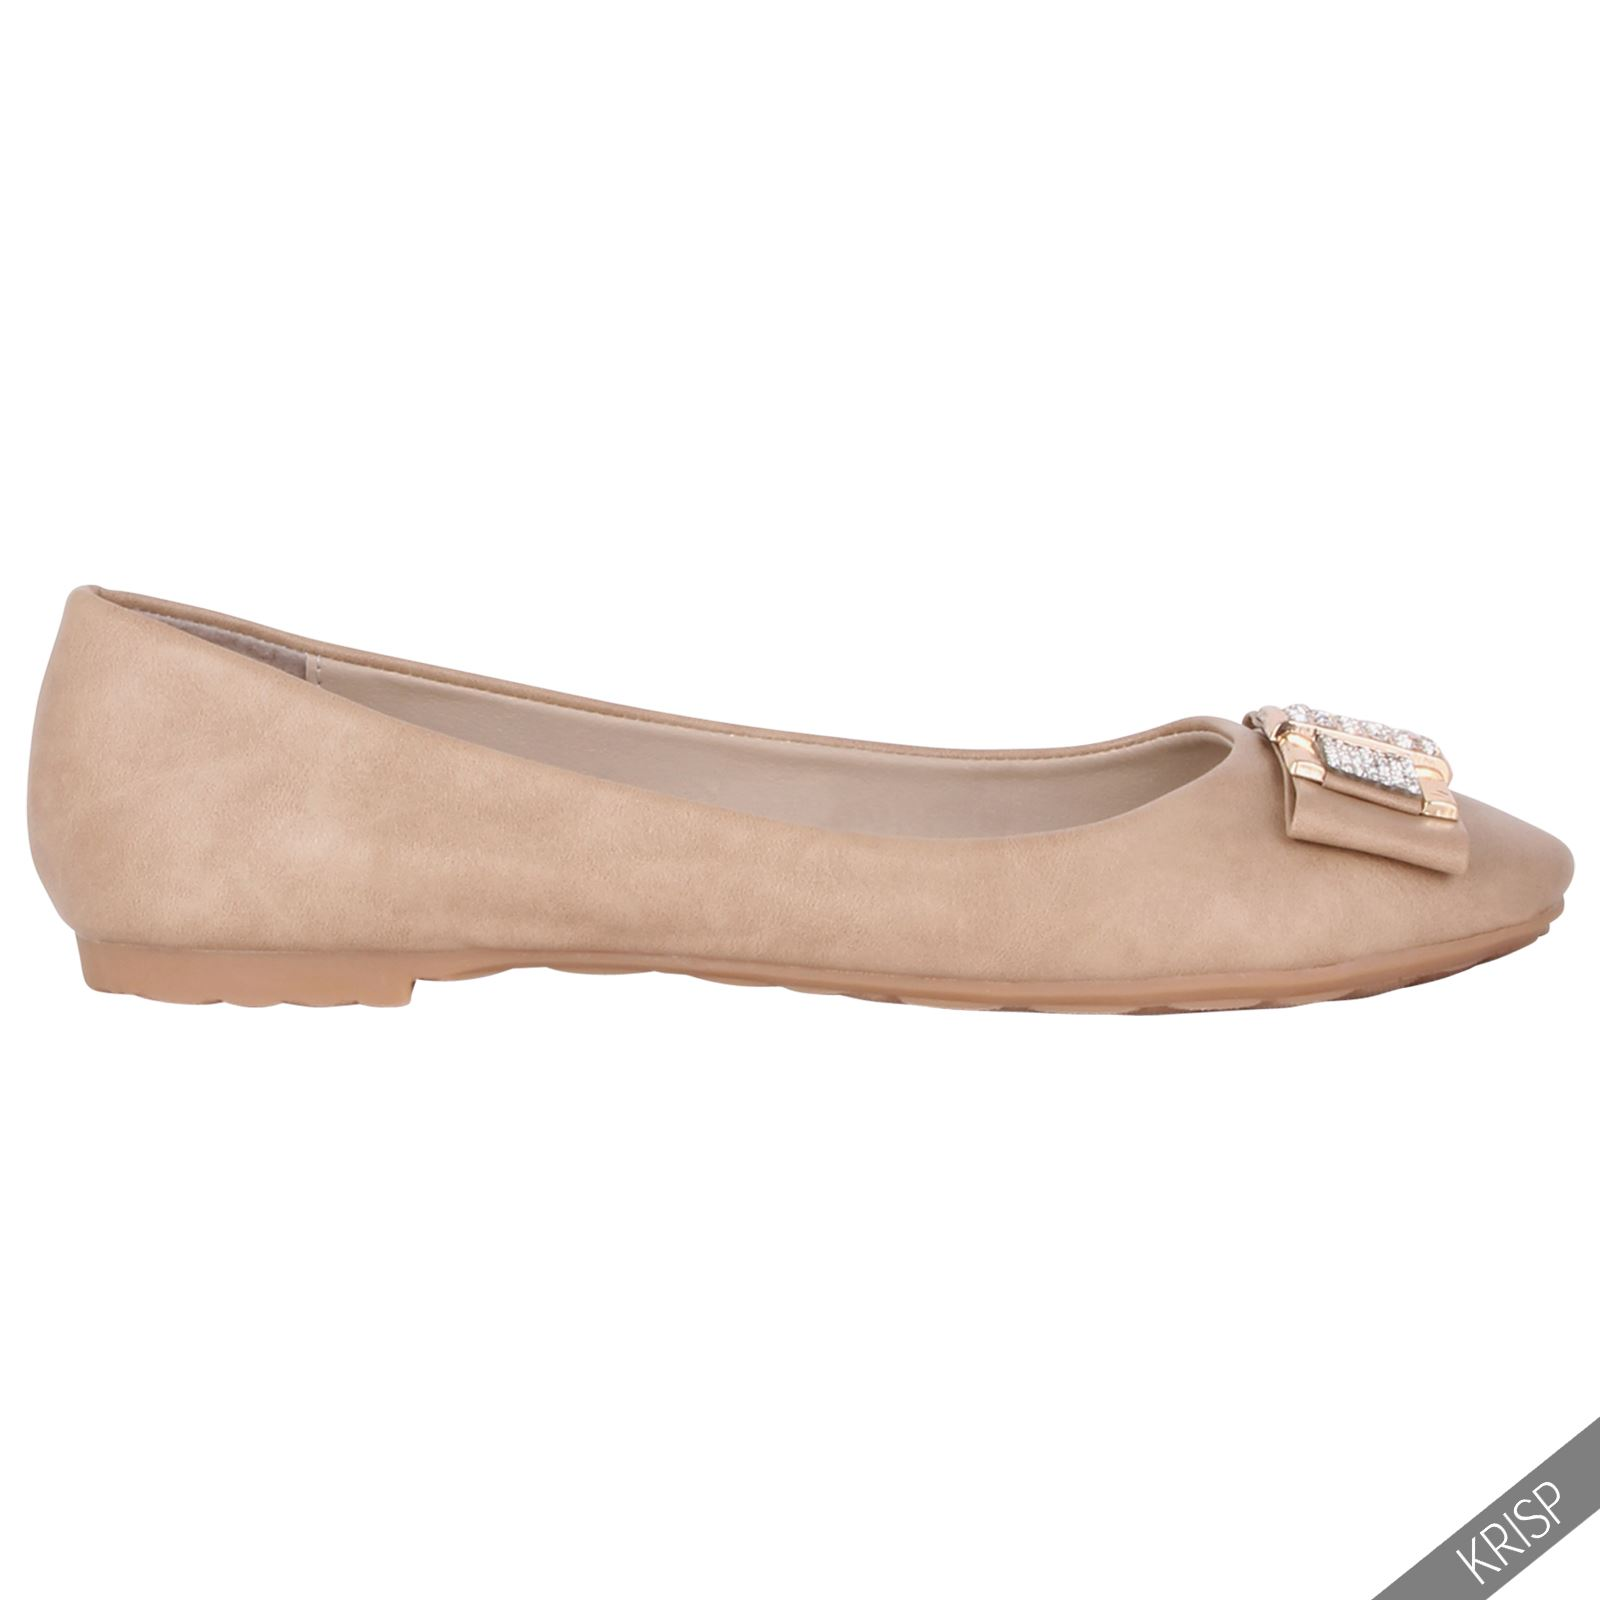 Womens-Black-Floral-Lace-Ballet-Flats-Gold-Embroidered-